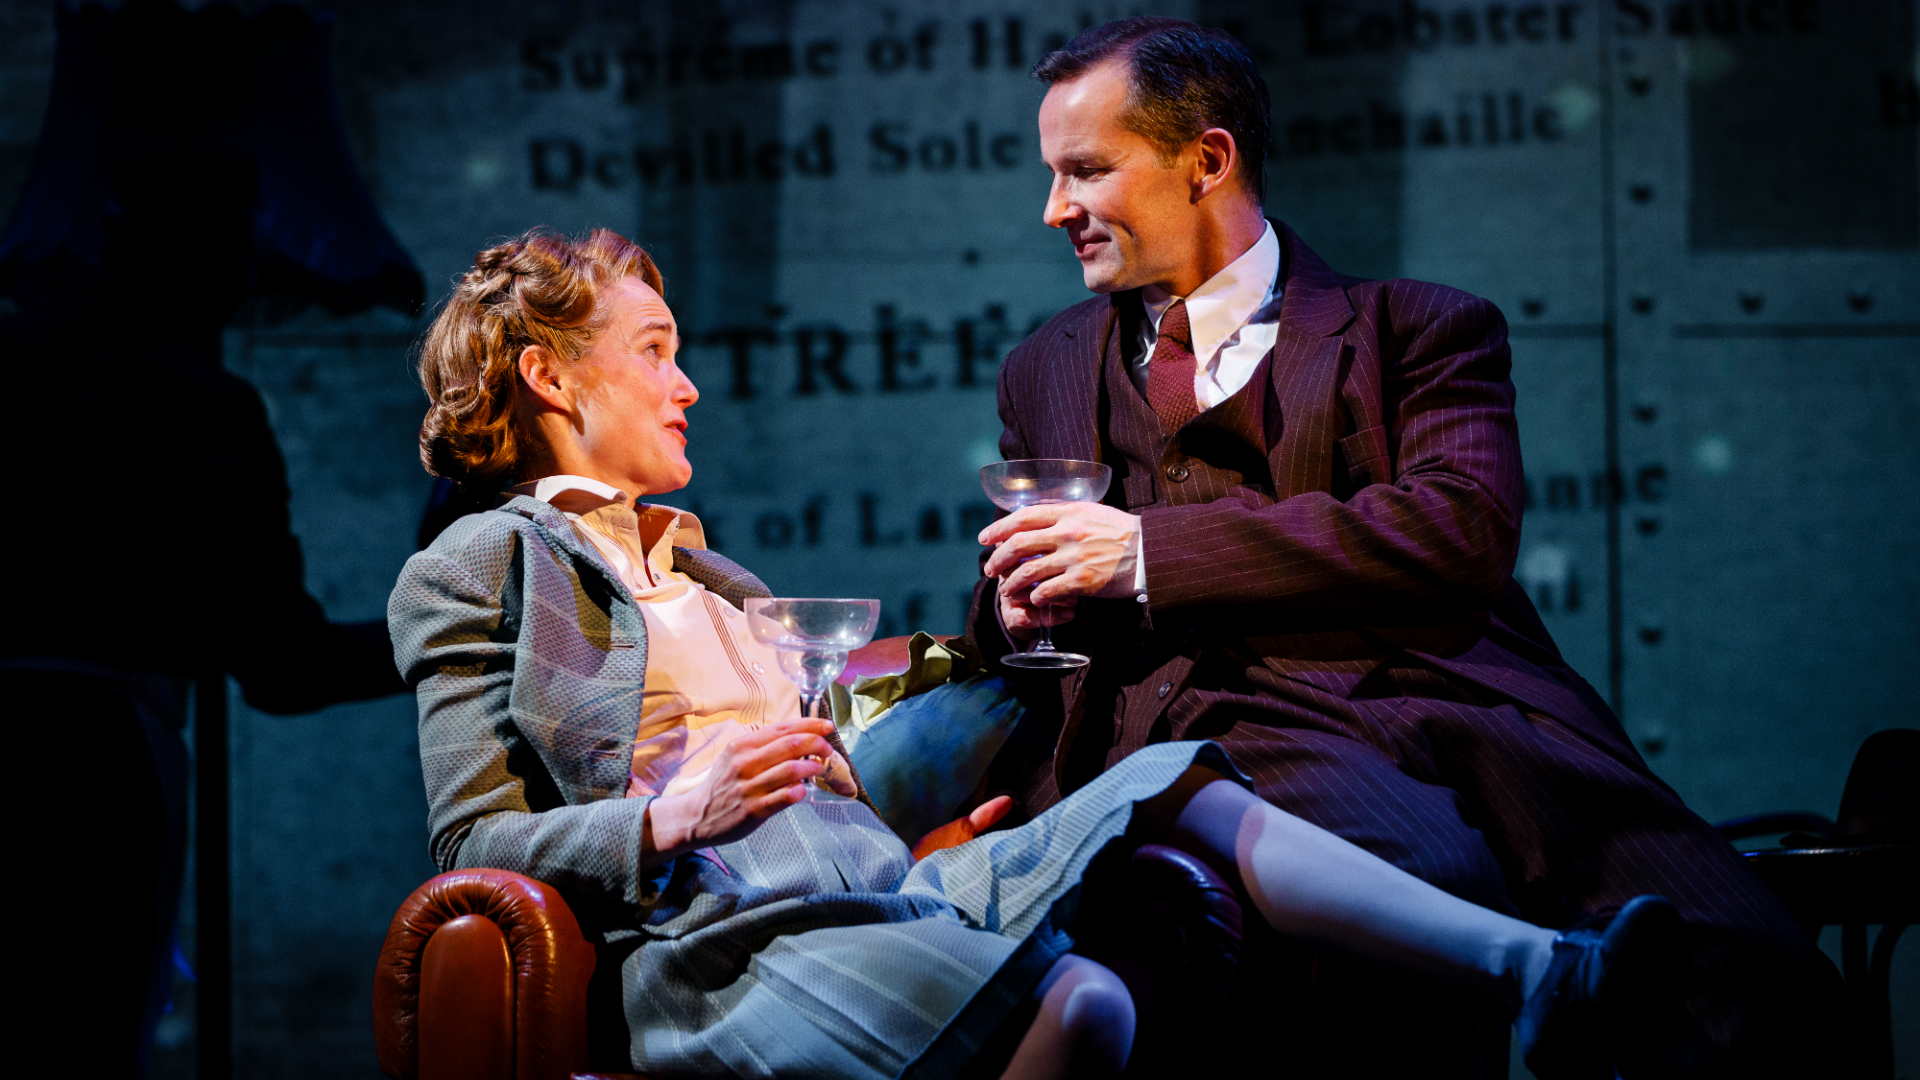 Isabel Pollen and Jim Sturgeon star in Brief Encounter